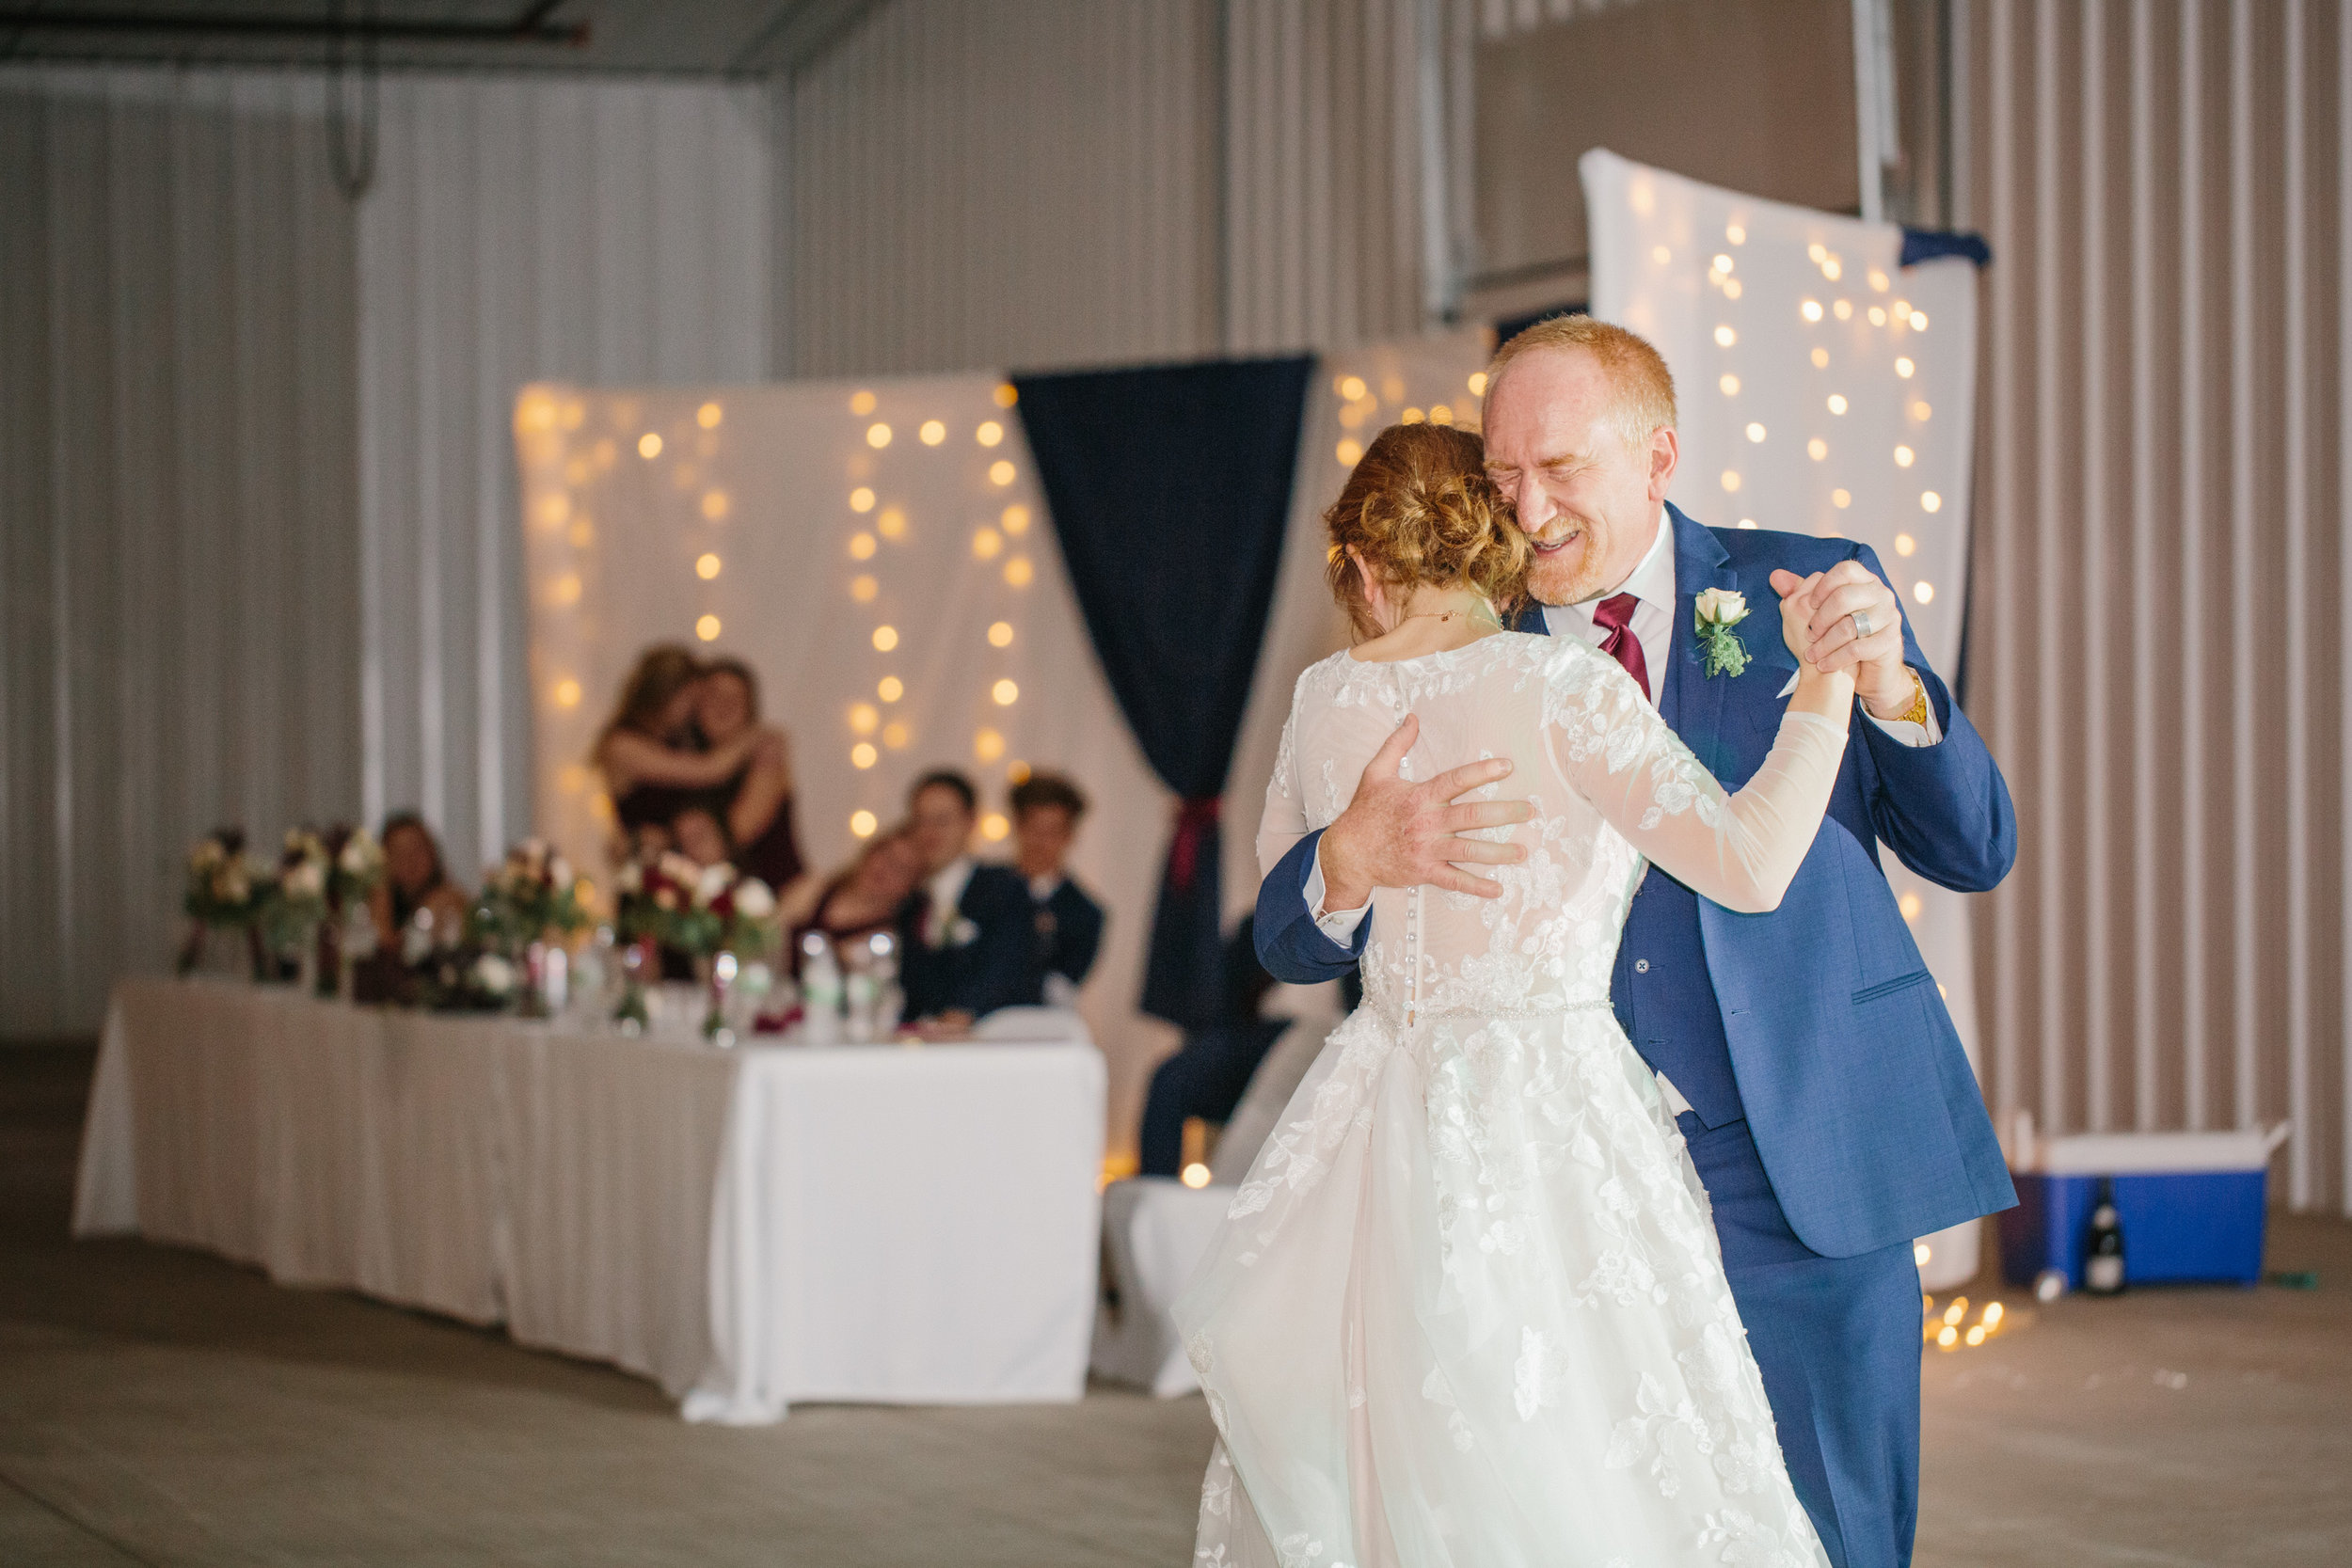 emotional father daughter dance at wedding crying